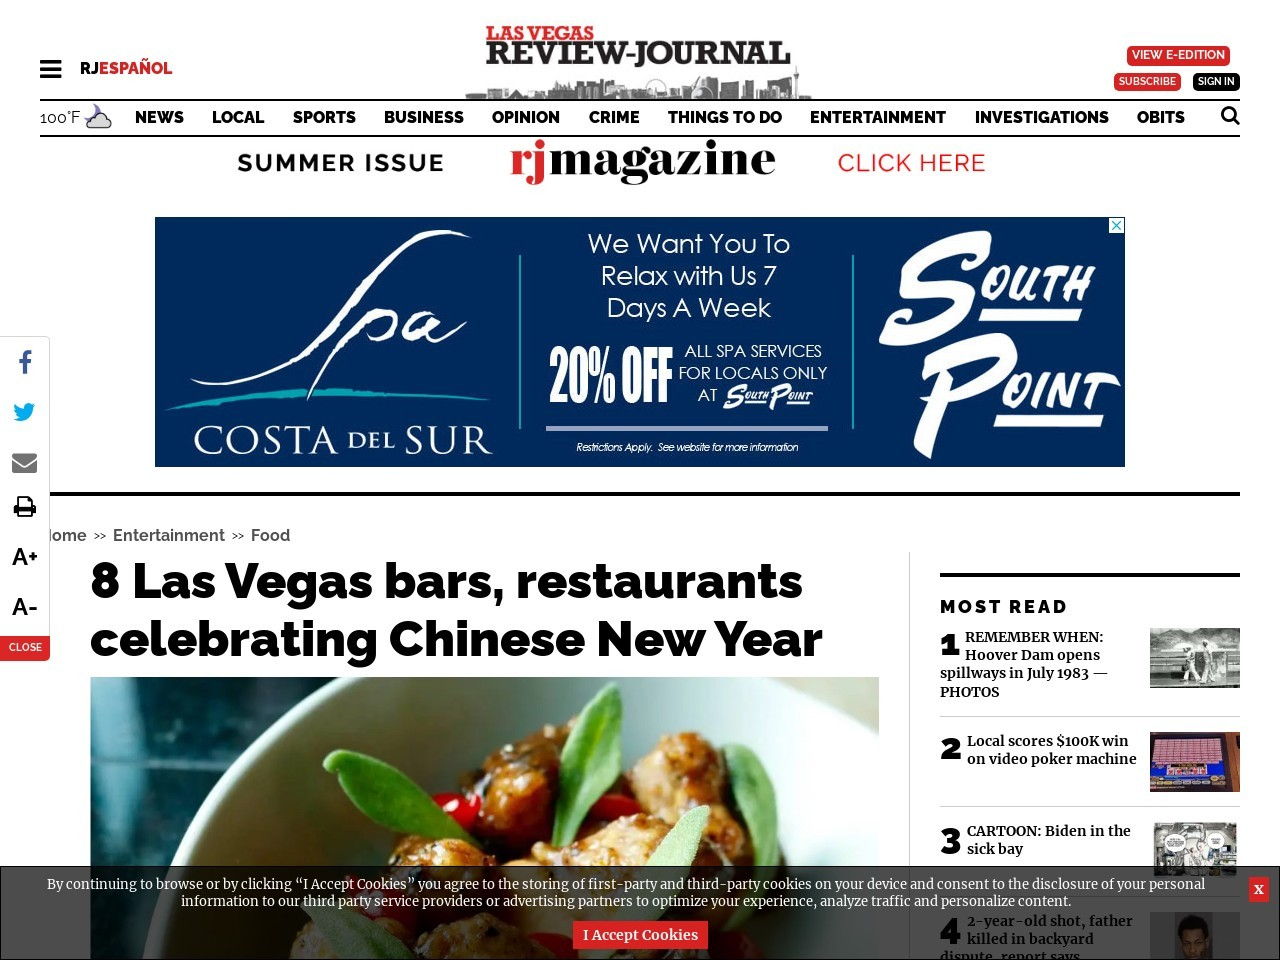 8 Las Vegas bars, restaurants celebrating Lunar New Year